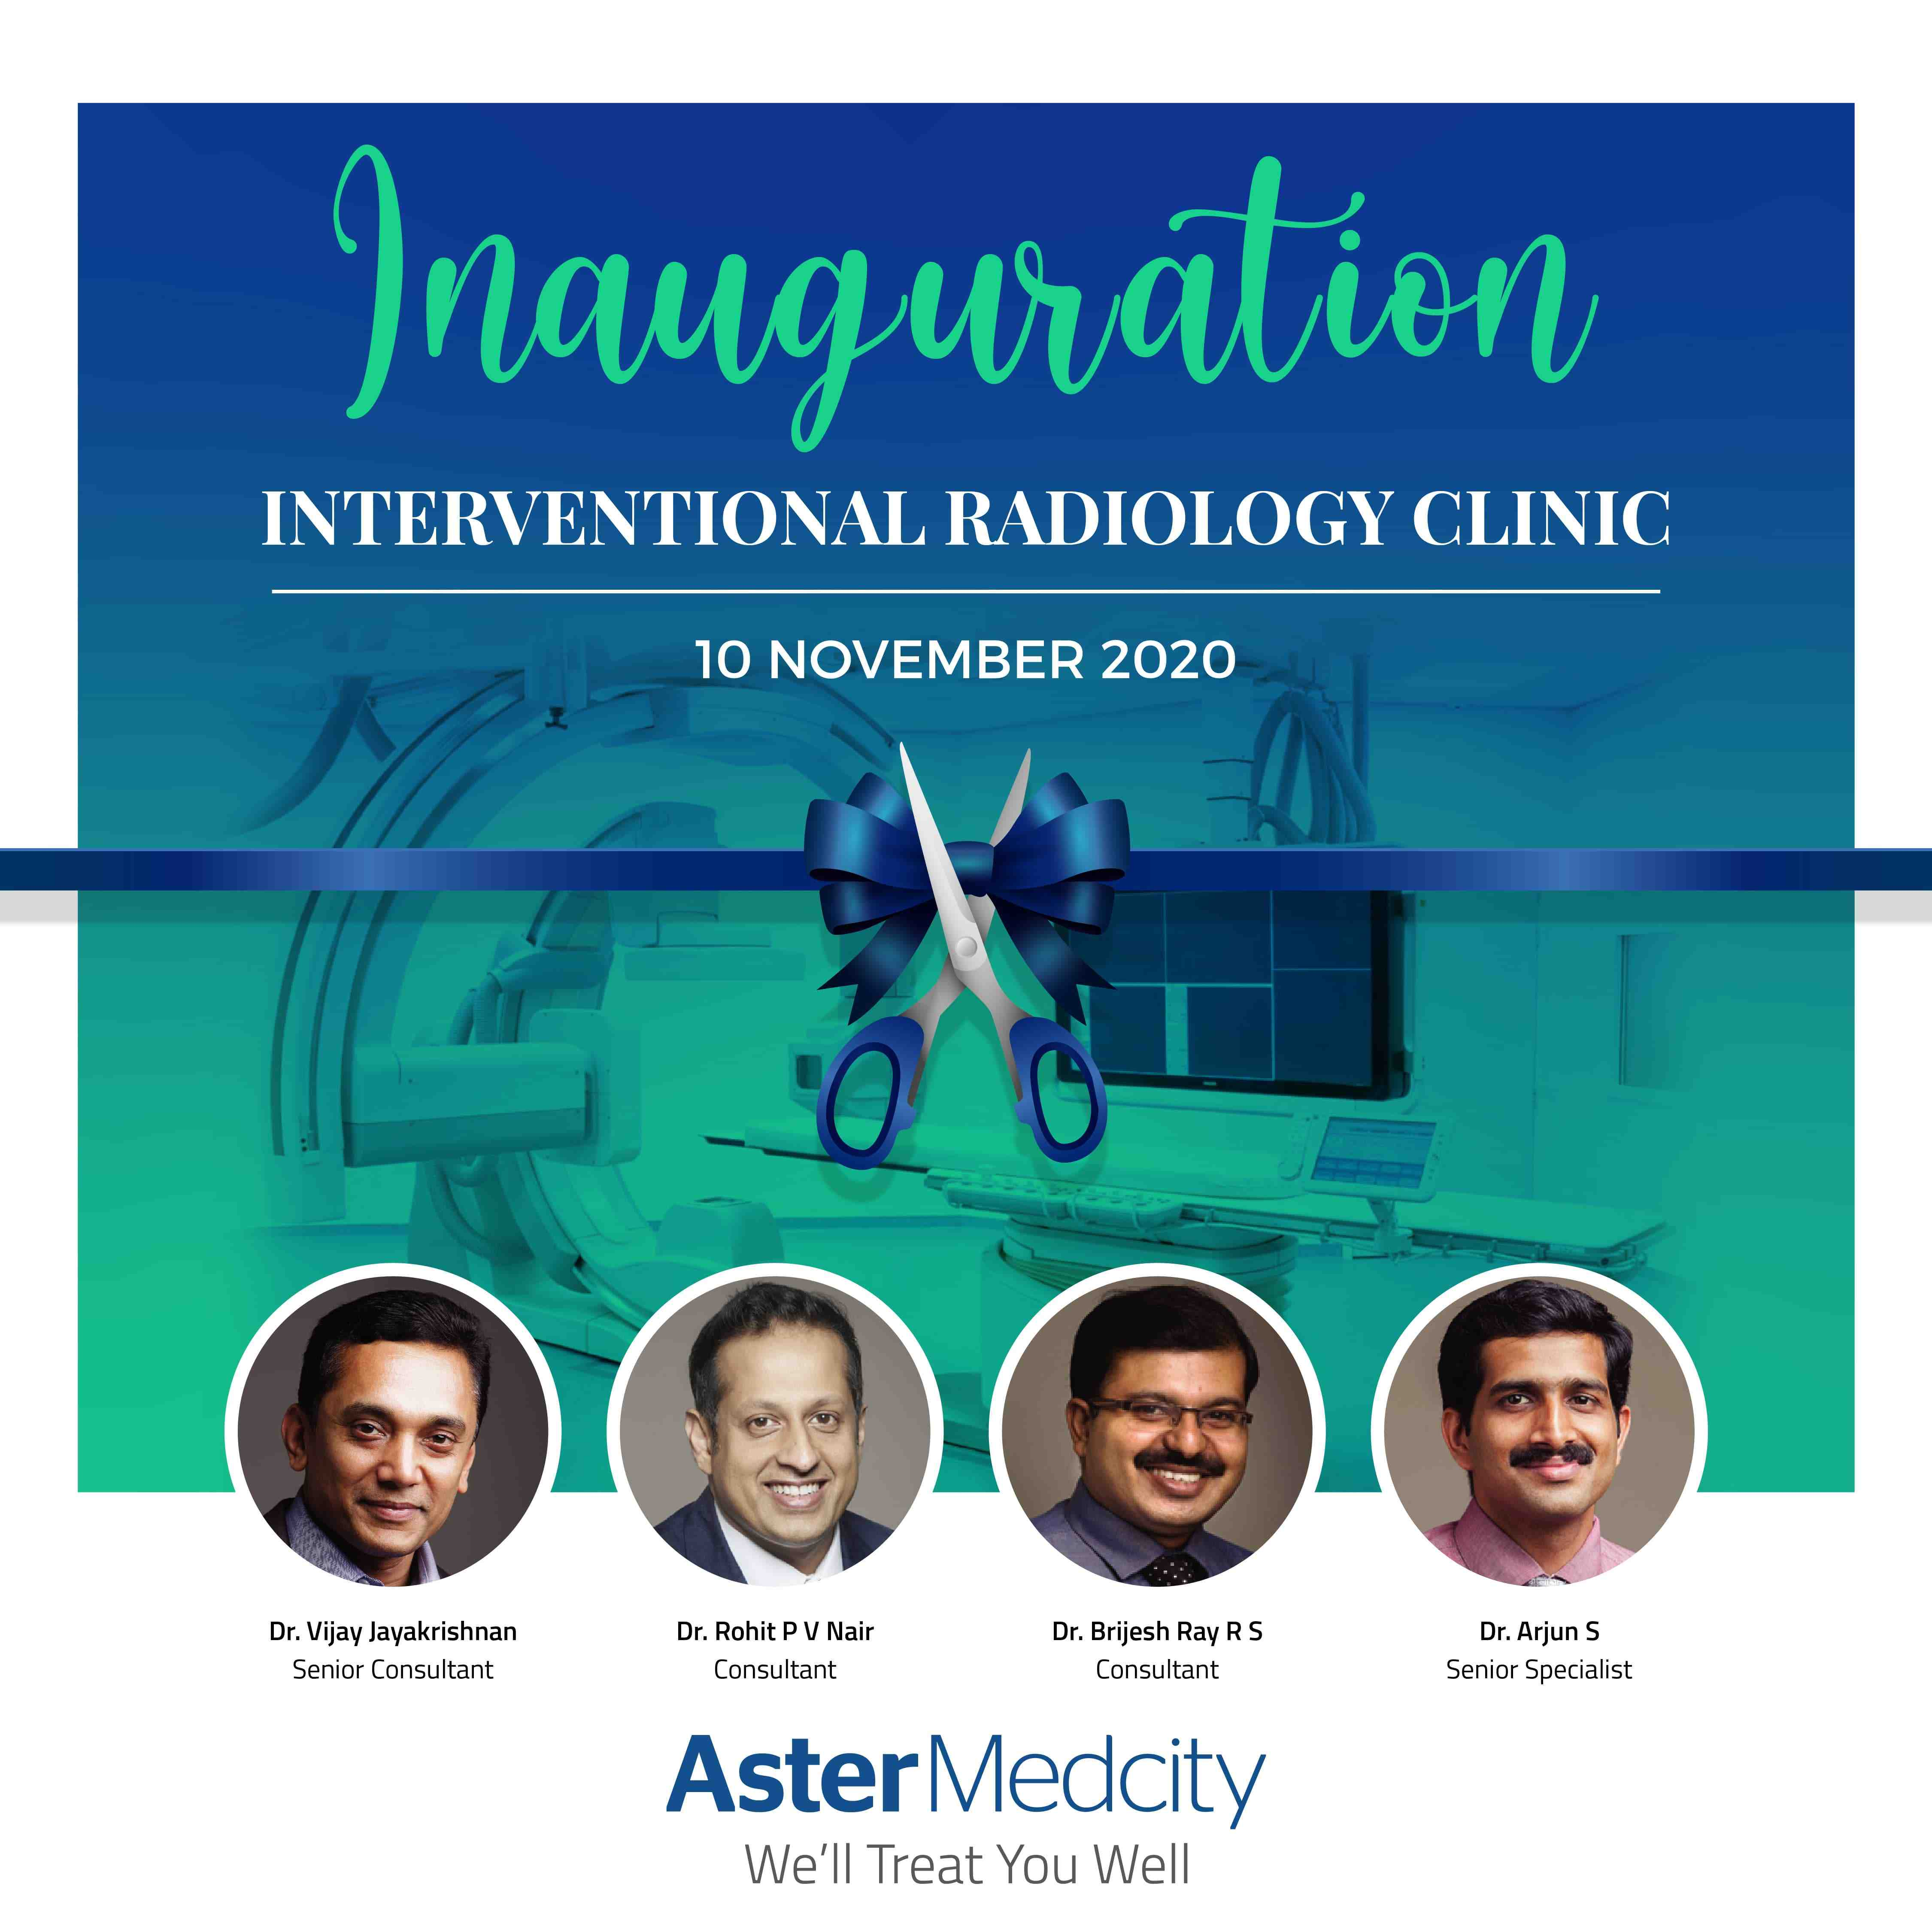 Intervention Radiology Clinic Inauguration INSTAGRAM